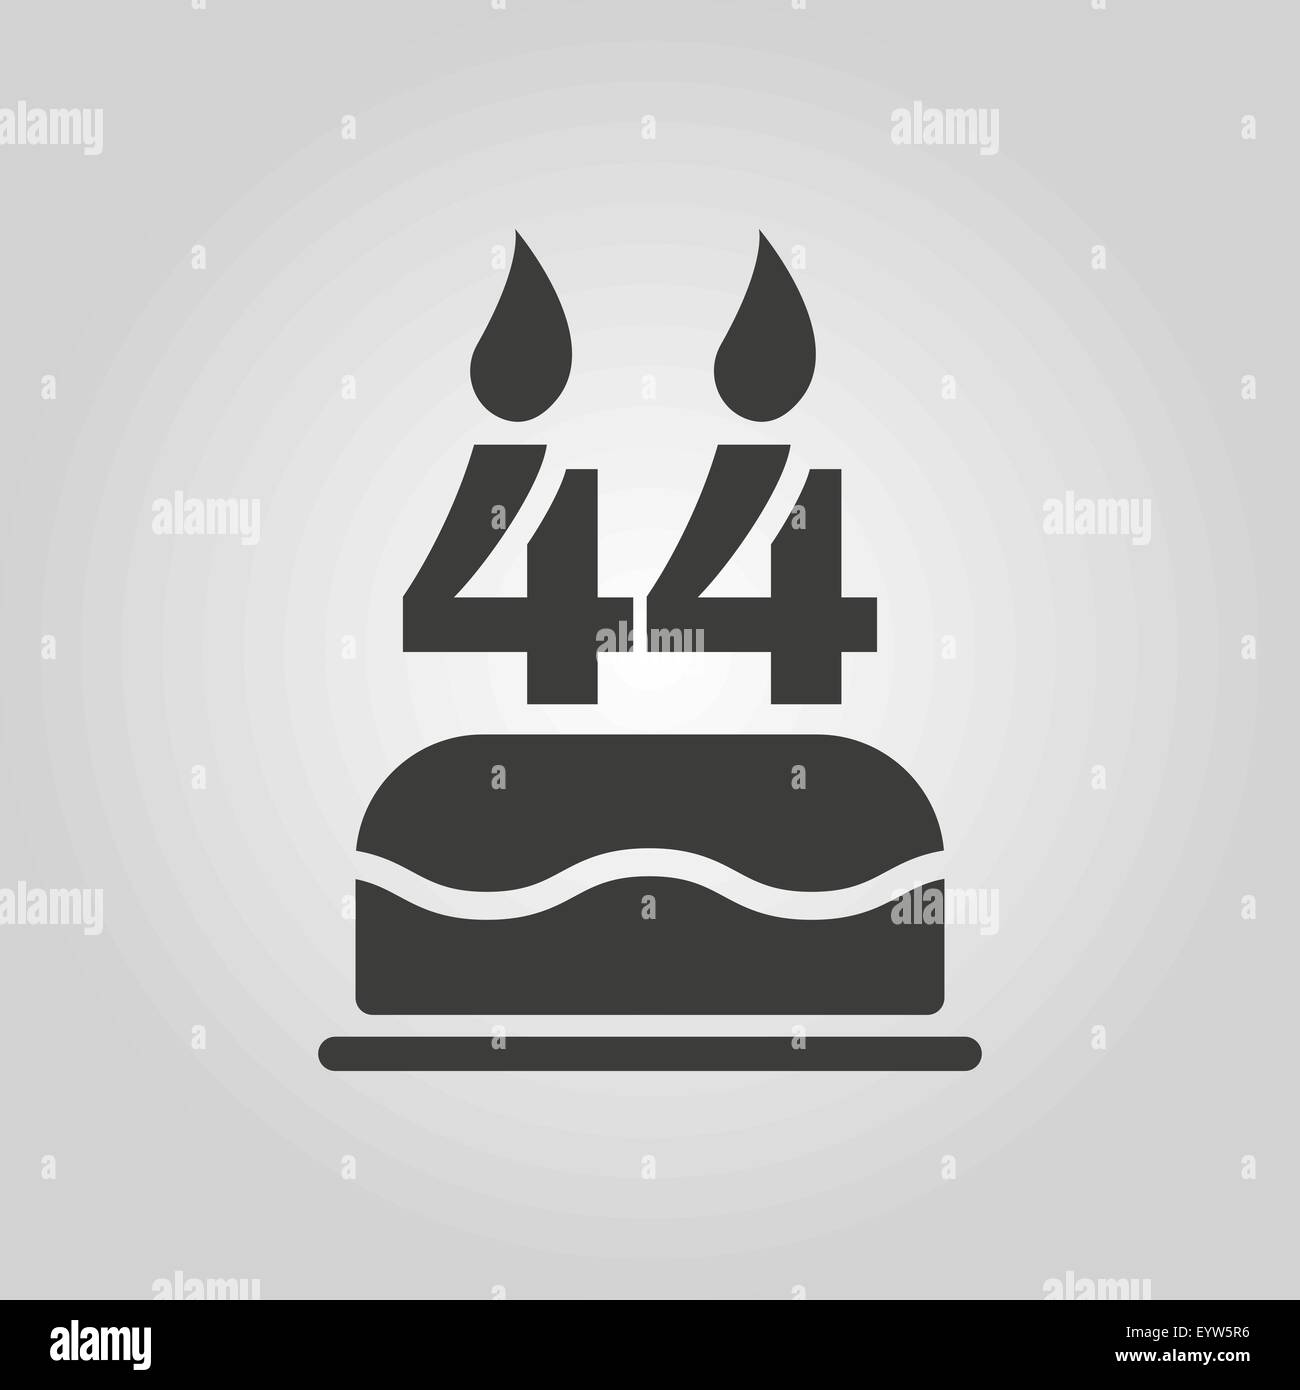 The birthday cake with candles in the form of number 44 icon Stock